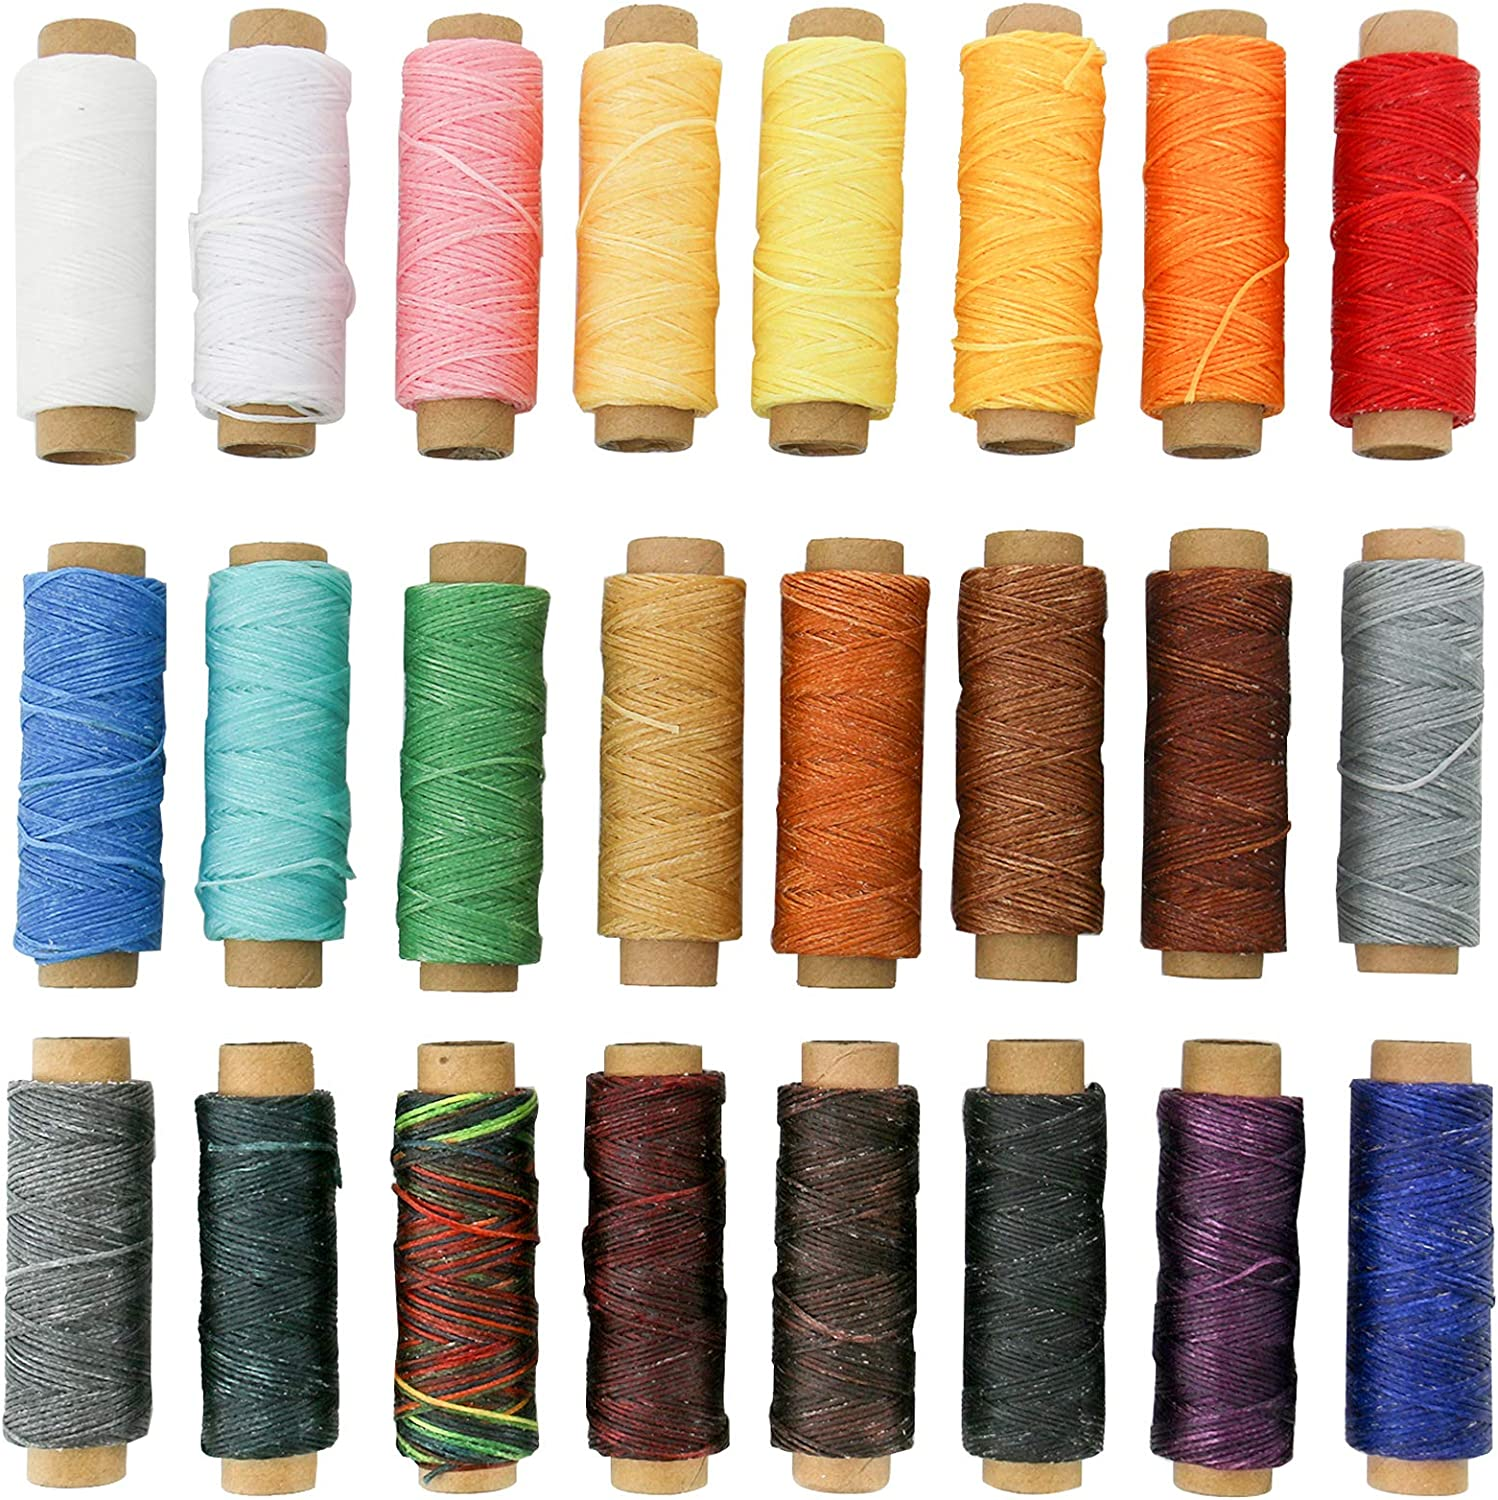 Outlet ☆ Free Shipping WerkWeit Leathercraft Waxed Thread 24 Sale Special Price 1320Yards Hand Colors Stit